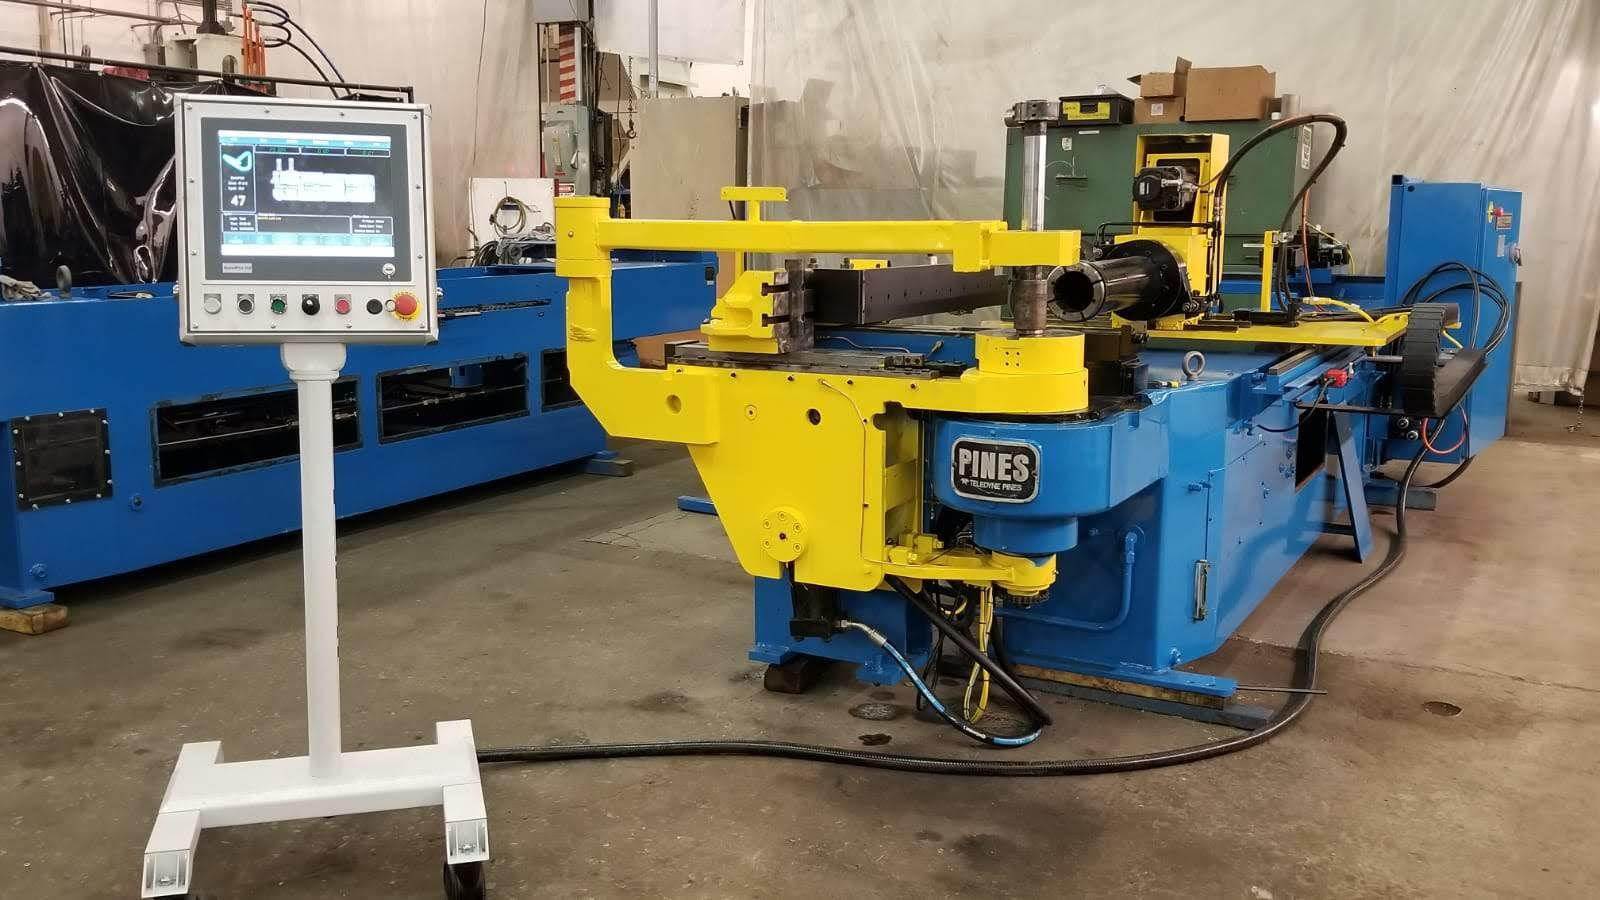 "3"" Pines #075 CNC Horizontal Tube Bender"